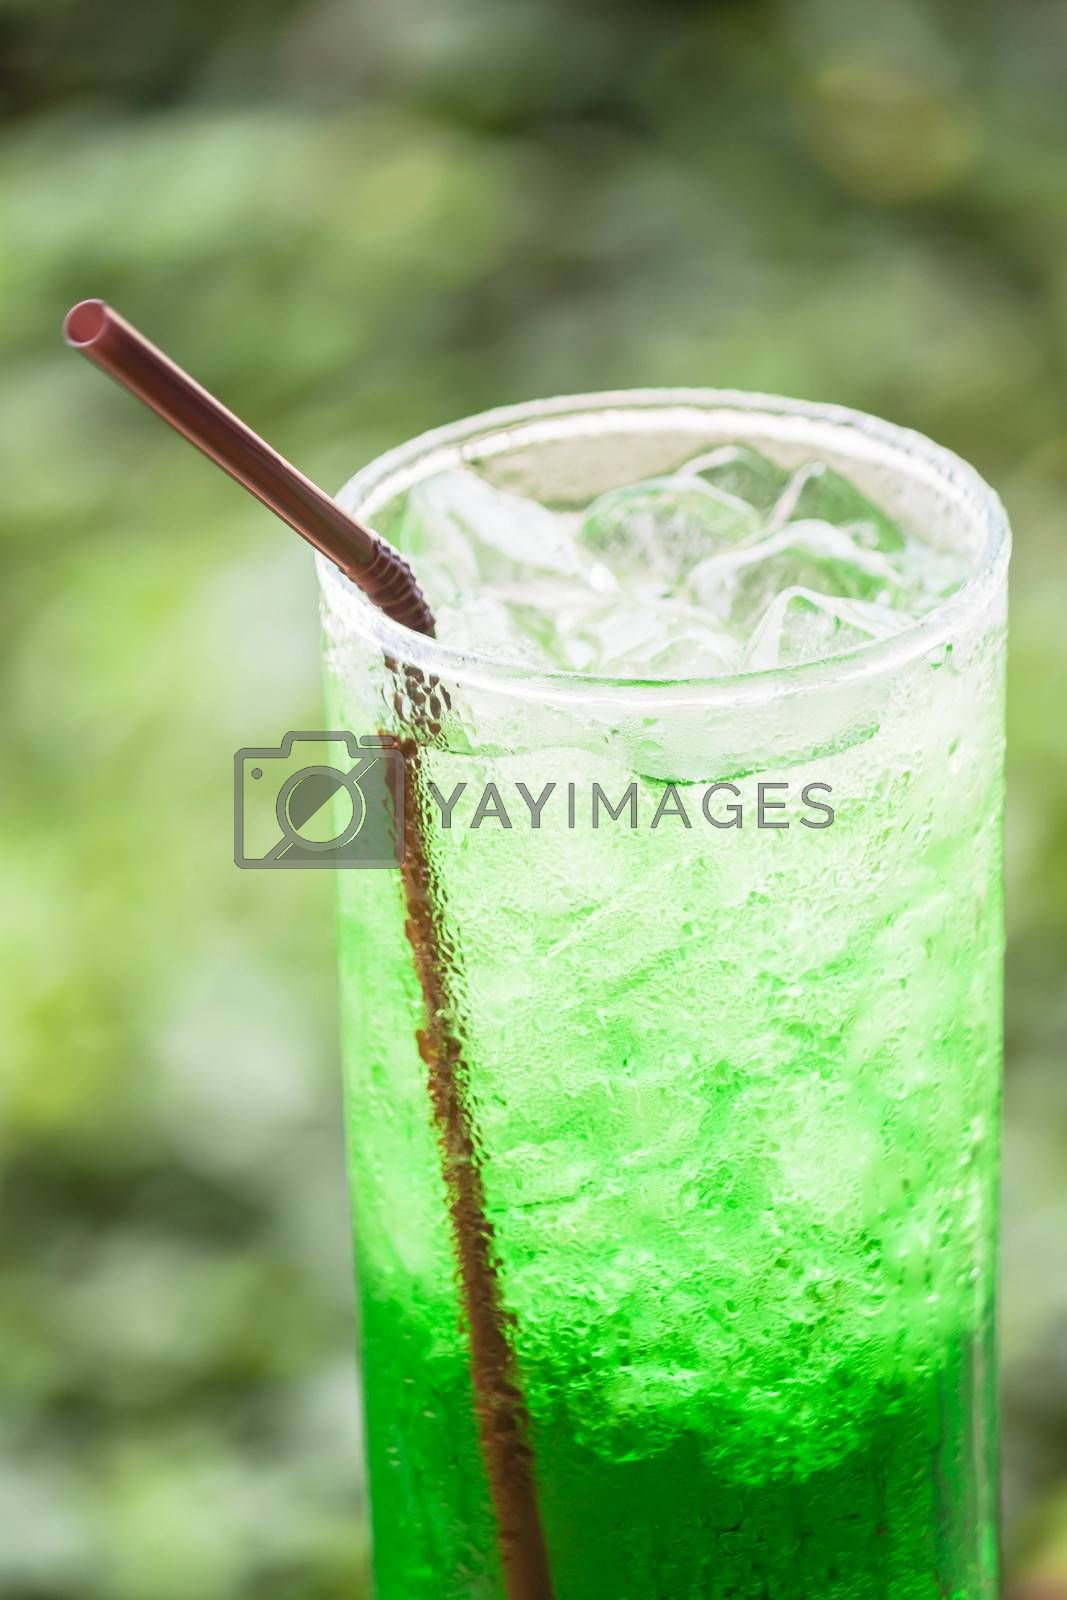 Non alcohol green drink with ice cubes